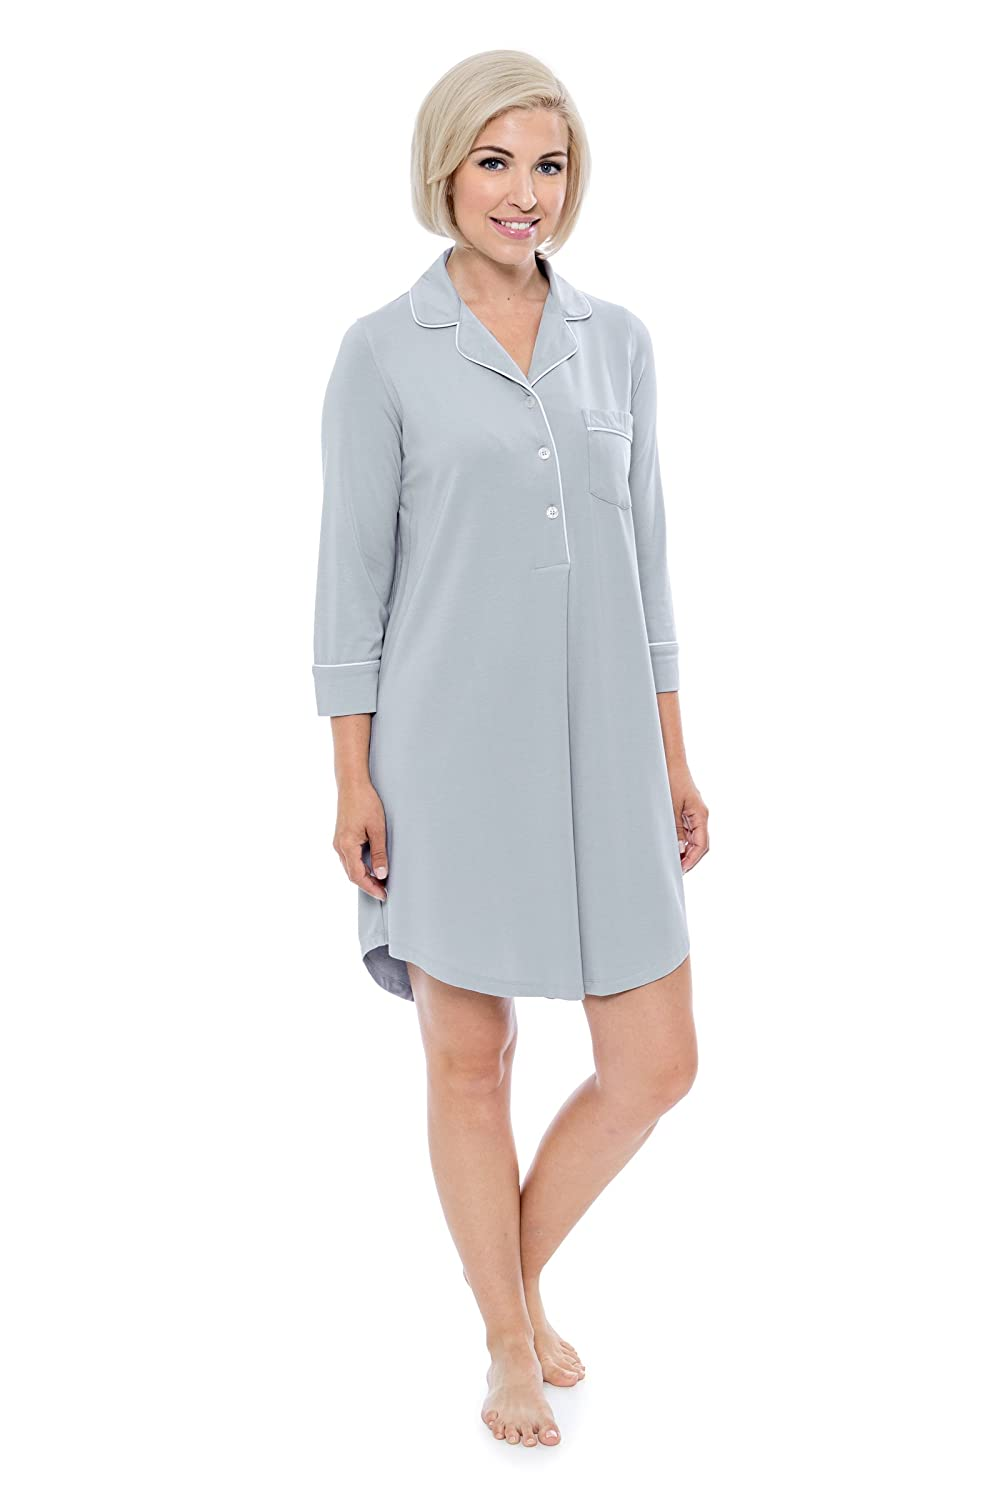 Women's Nightshirt in Bamboo Viscose (Zenrest) Stylish Sleep Shirt by Texere